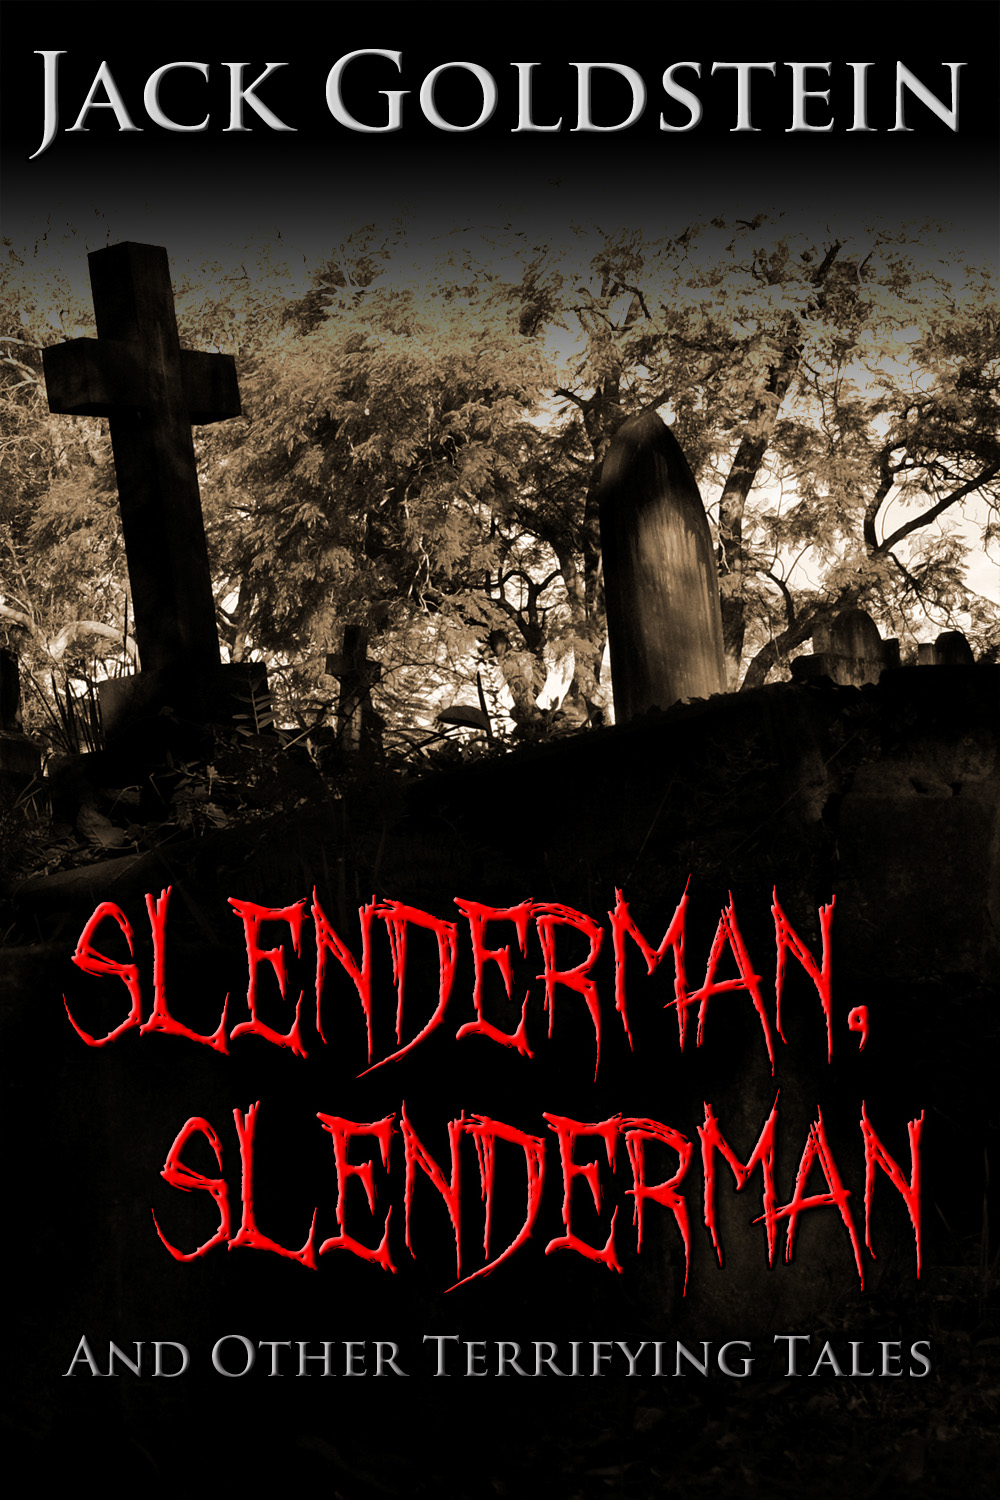 Slenderman, Slenderman - And Other Terrifying Tales By: Jack Goldstein